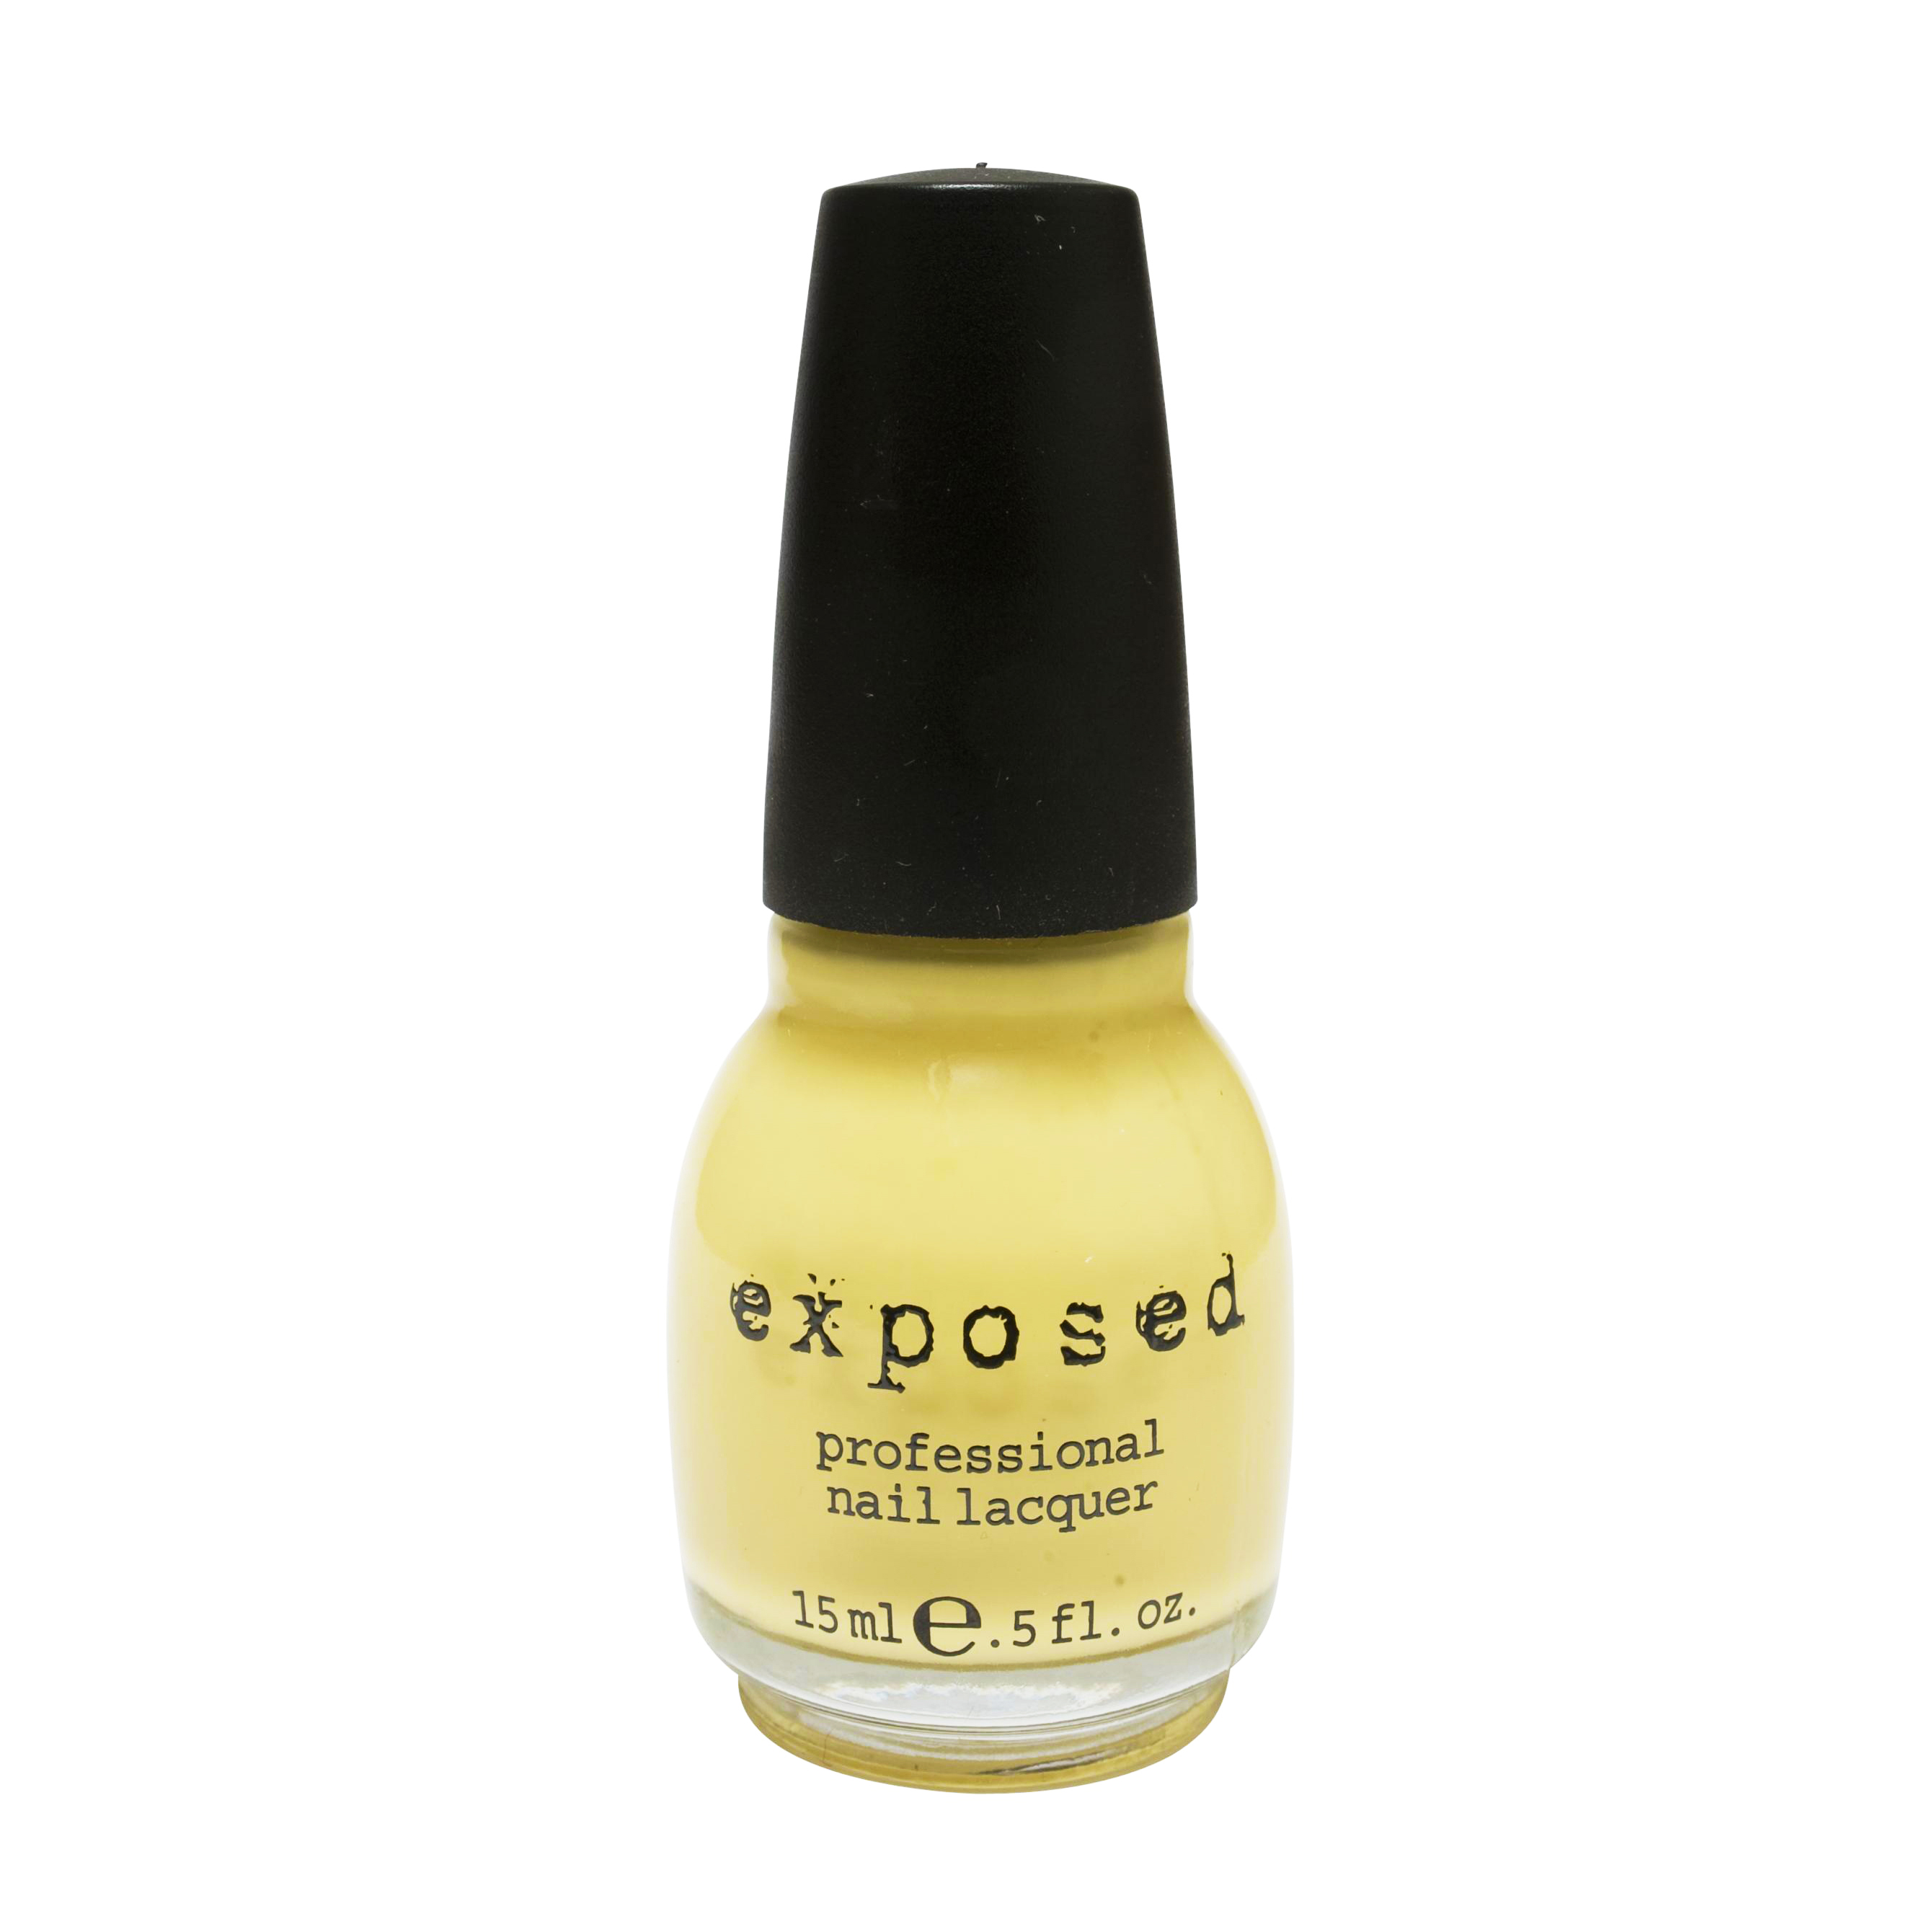 Exposed Professional Nail Lacquer - Daisy Chain - Just Essentials